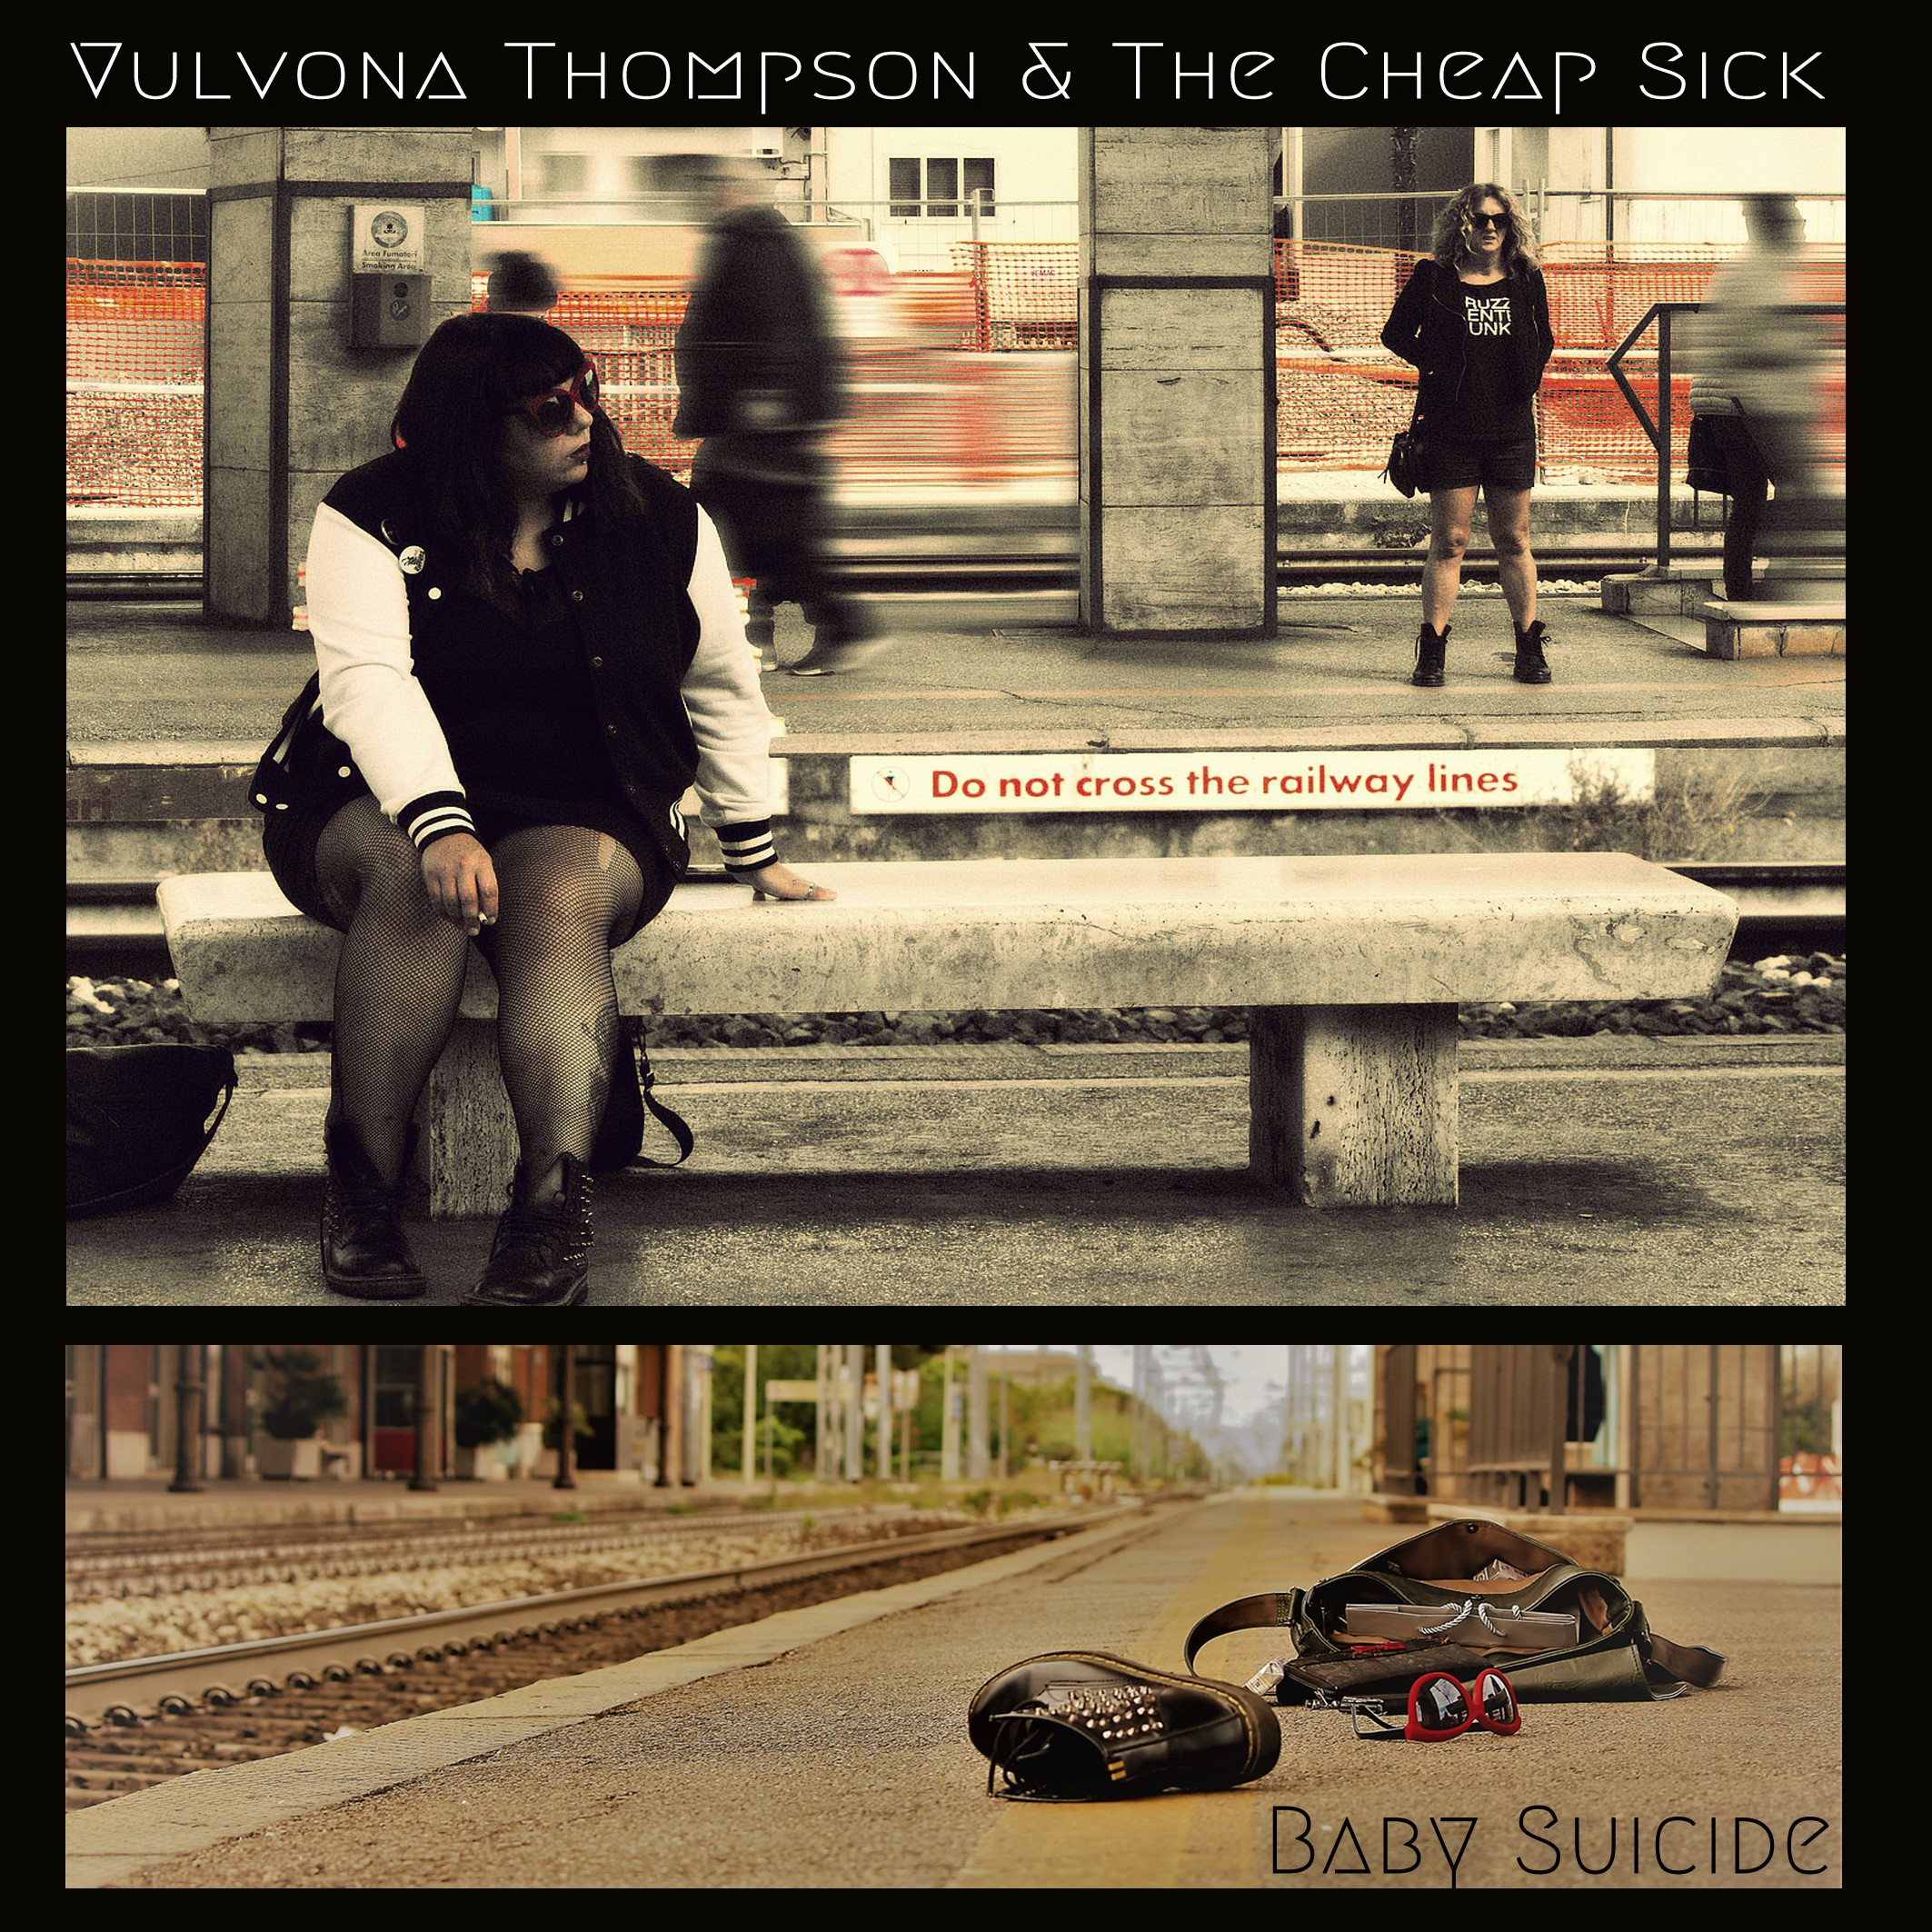 Vulvona Thompson & the Cheap Sick - Satan / Baby Suicide 1 - fanzine